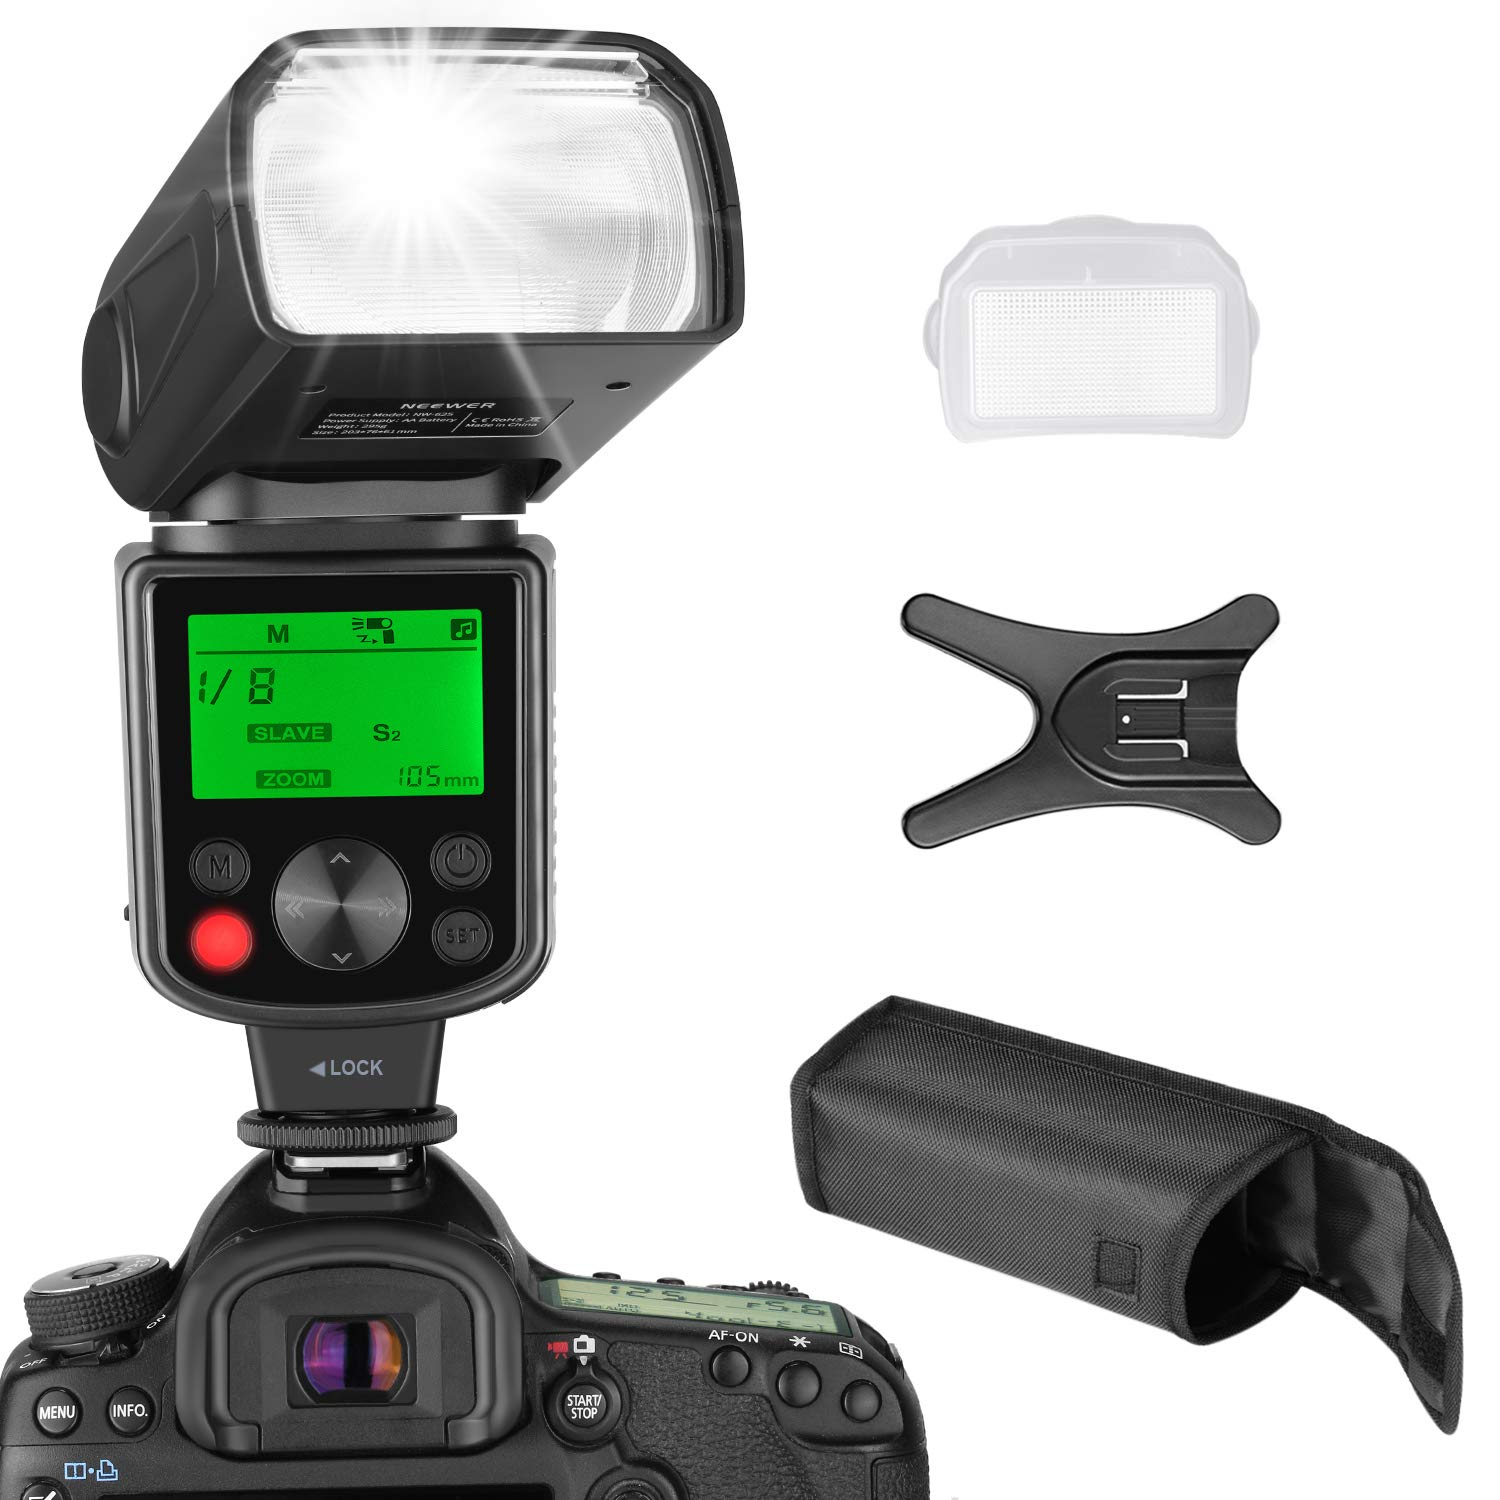 Neewer NW625 GN54 Speedlite Flash for Canon Nikon Panasonic Olympus Pentax Fijifilm DSLRs and Mirrorless Cameras and Sony with Mi Hot Shoe Like a9 a7 a7II a7III a7R III a7RII a7SII a6000 a6300 a6500 by Neewer